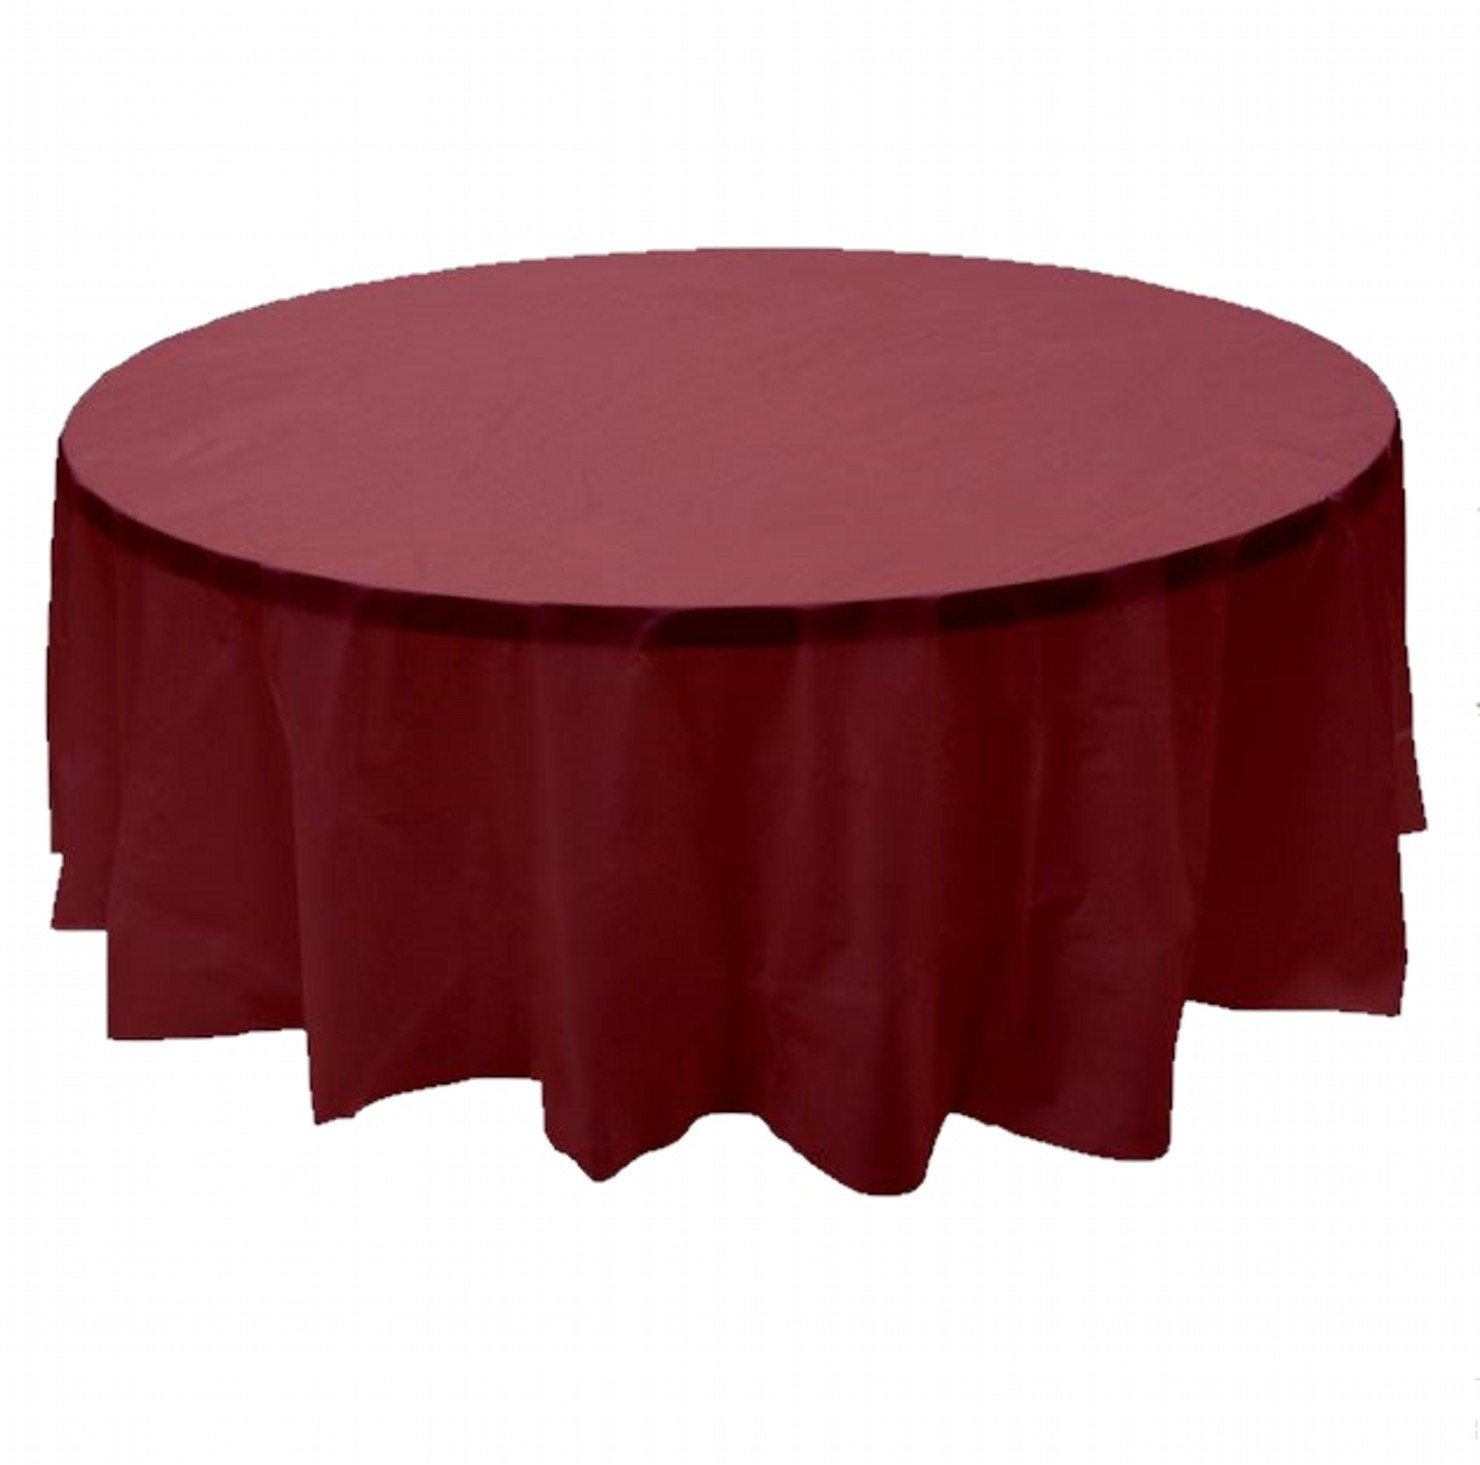 "2 Plastic Round Tablecloths 84"" Diameter Table Cover - Burgundy"